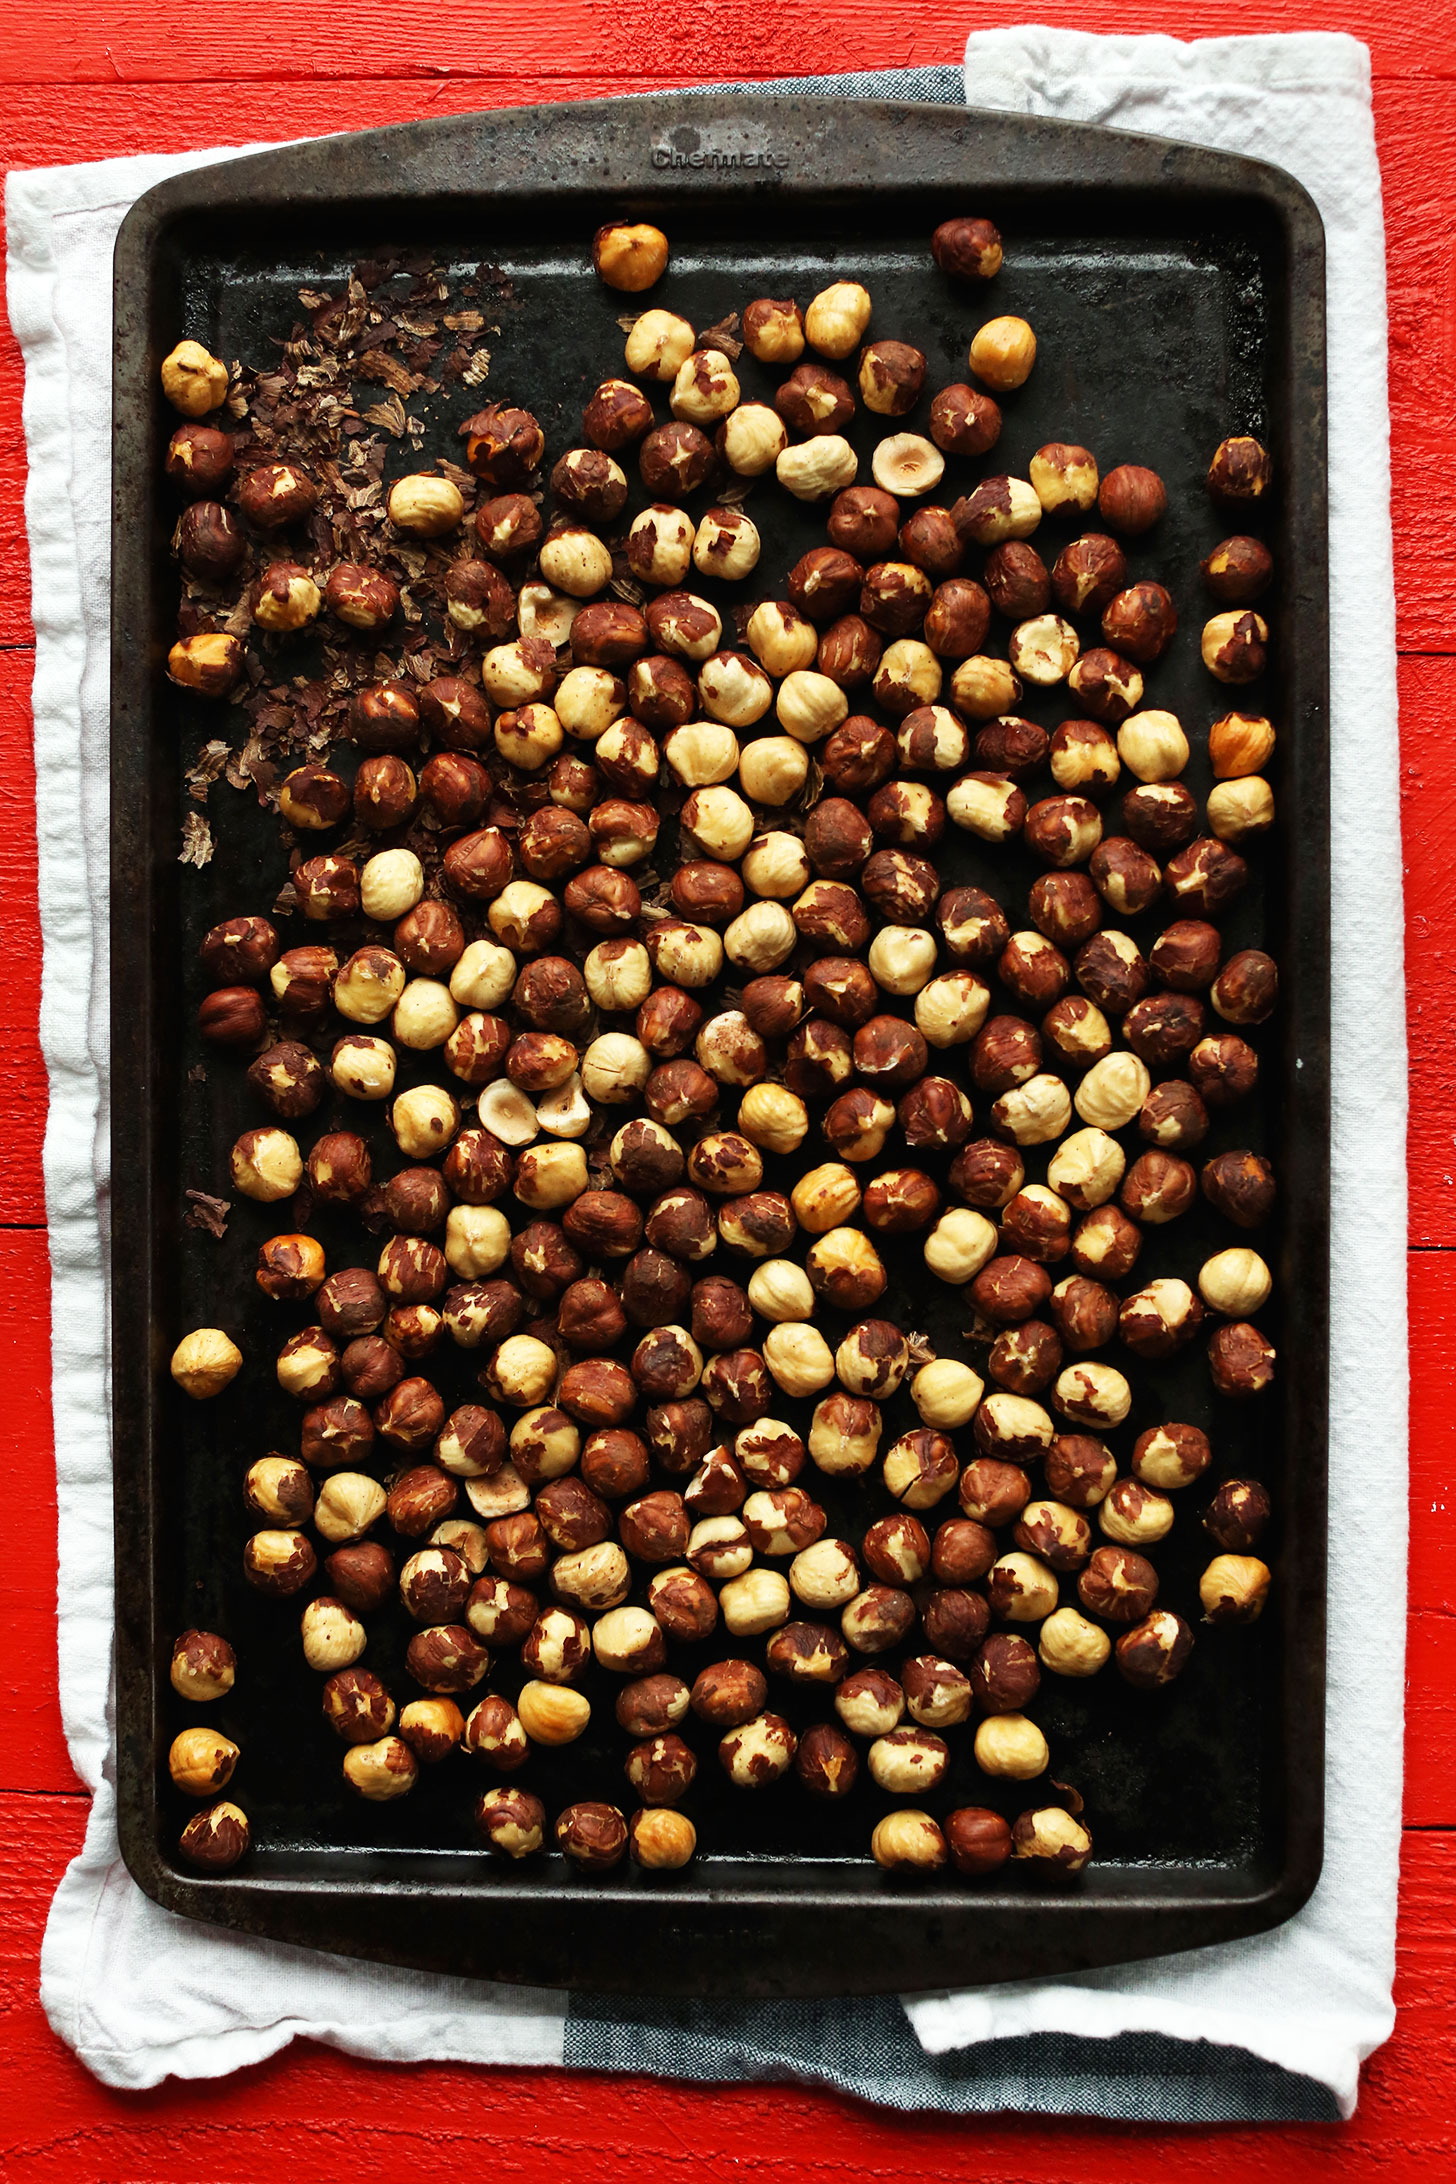 Baking sheet filled with freshly roasted hazelnuts for making Hazelnut Butter